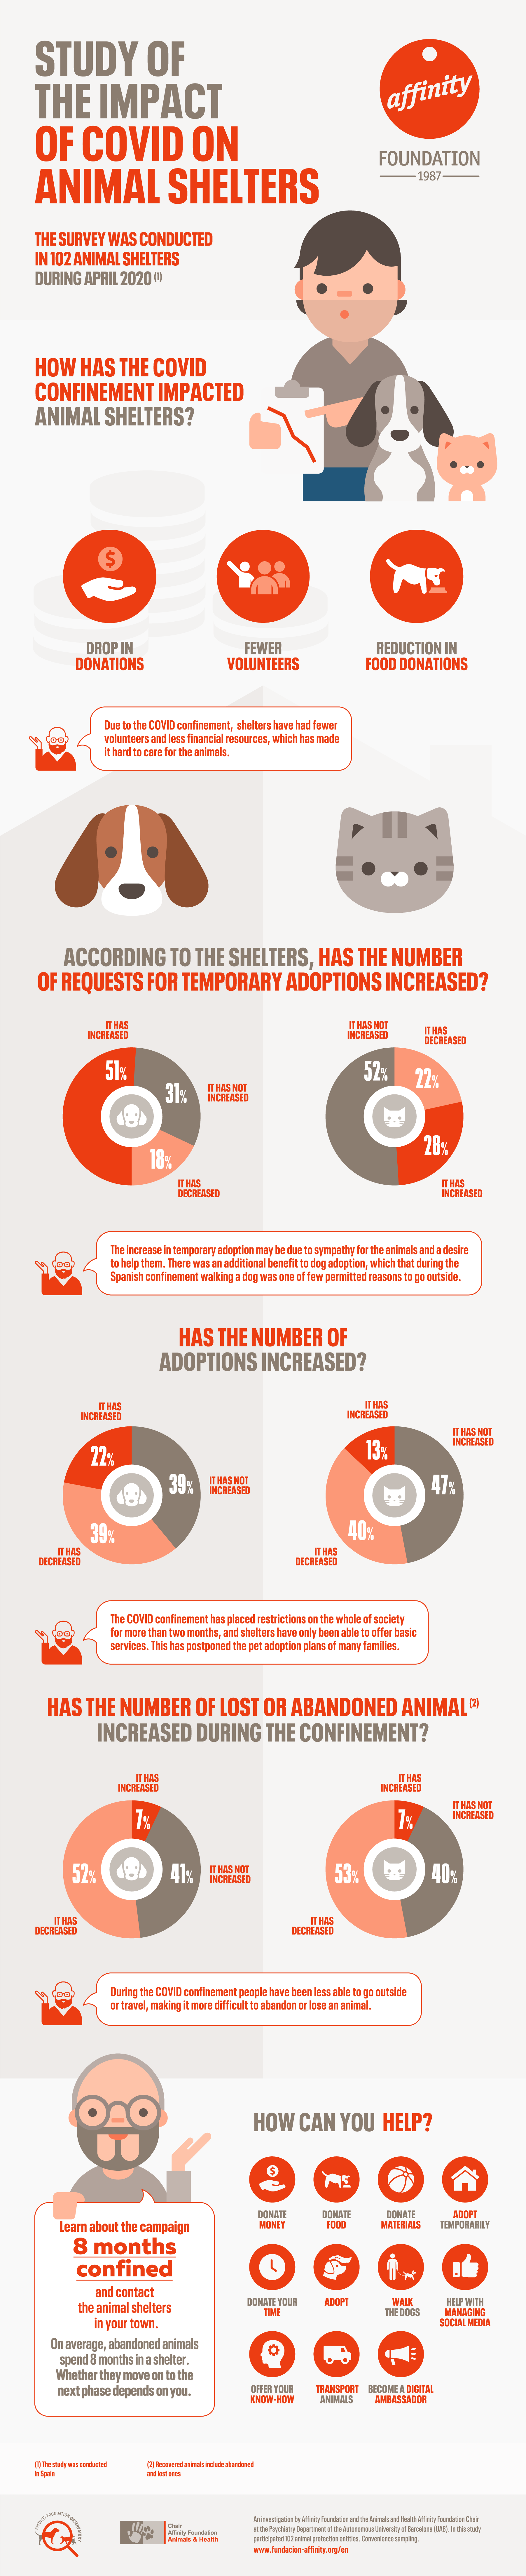 Study of the impact of Covid on animal shelters Infographic